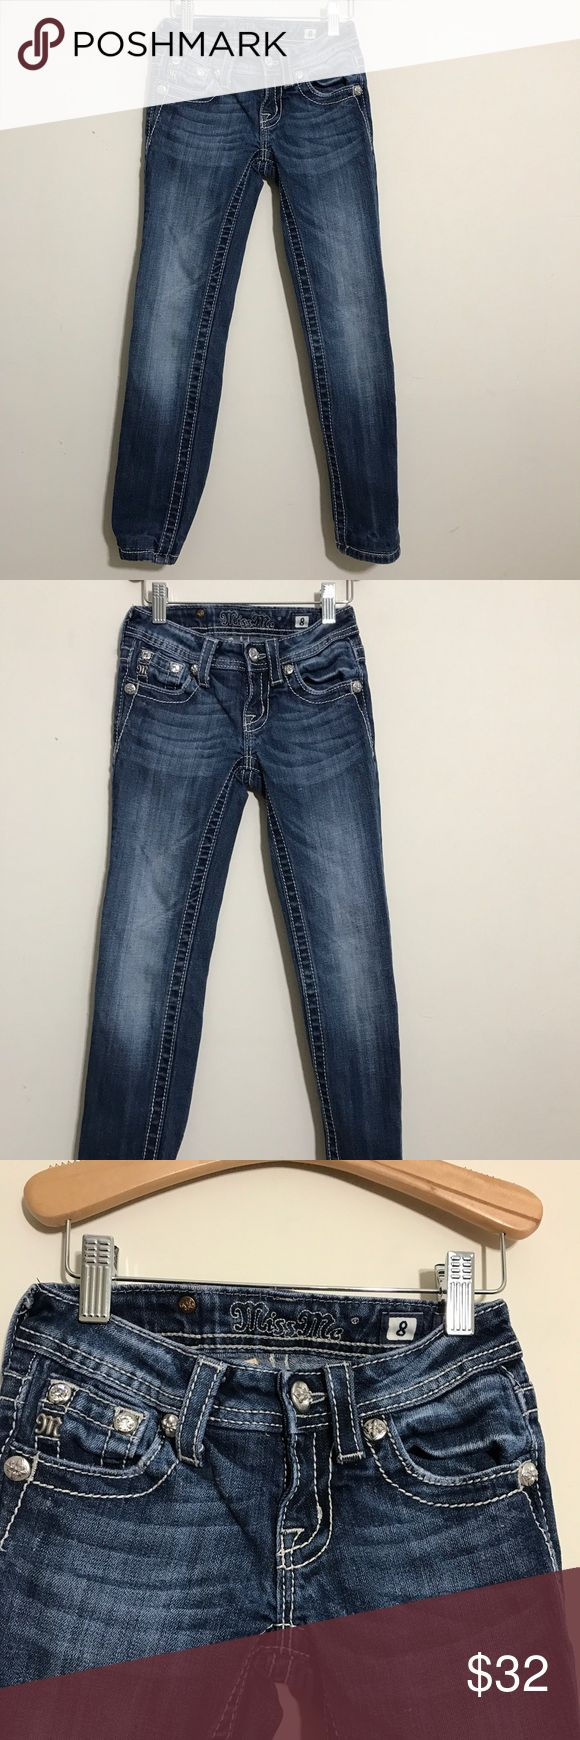 Girls miss me jeans 8 Girls miss me jeans 8 Miss Me Bottoms Jeans